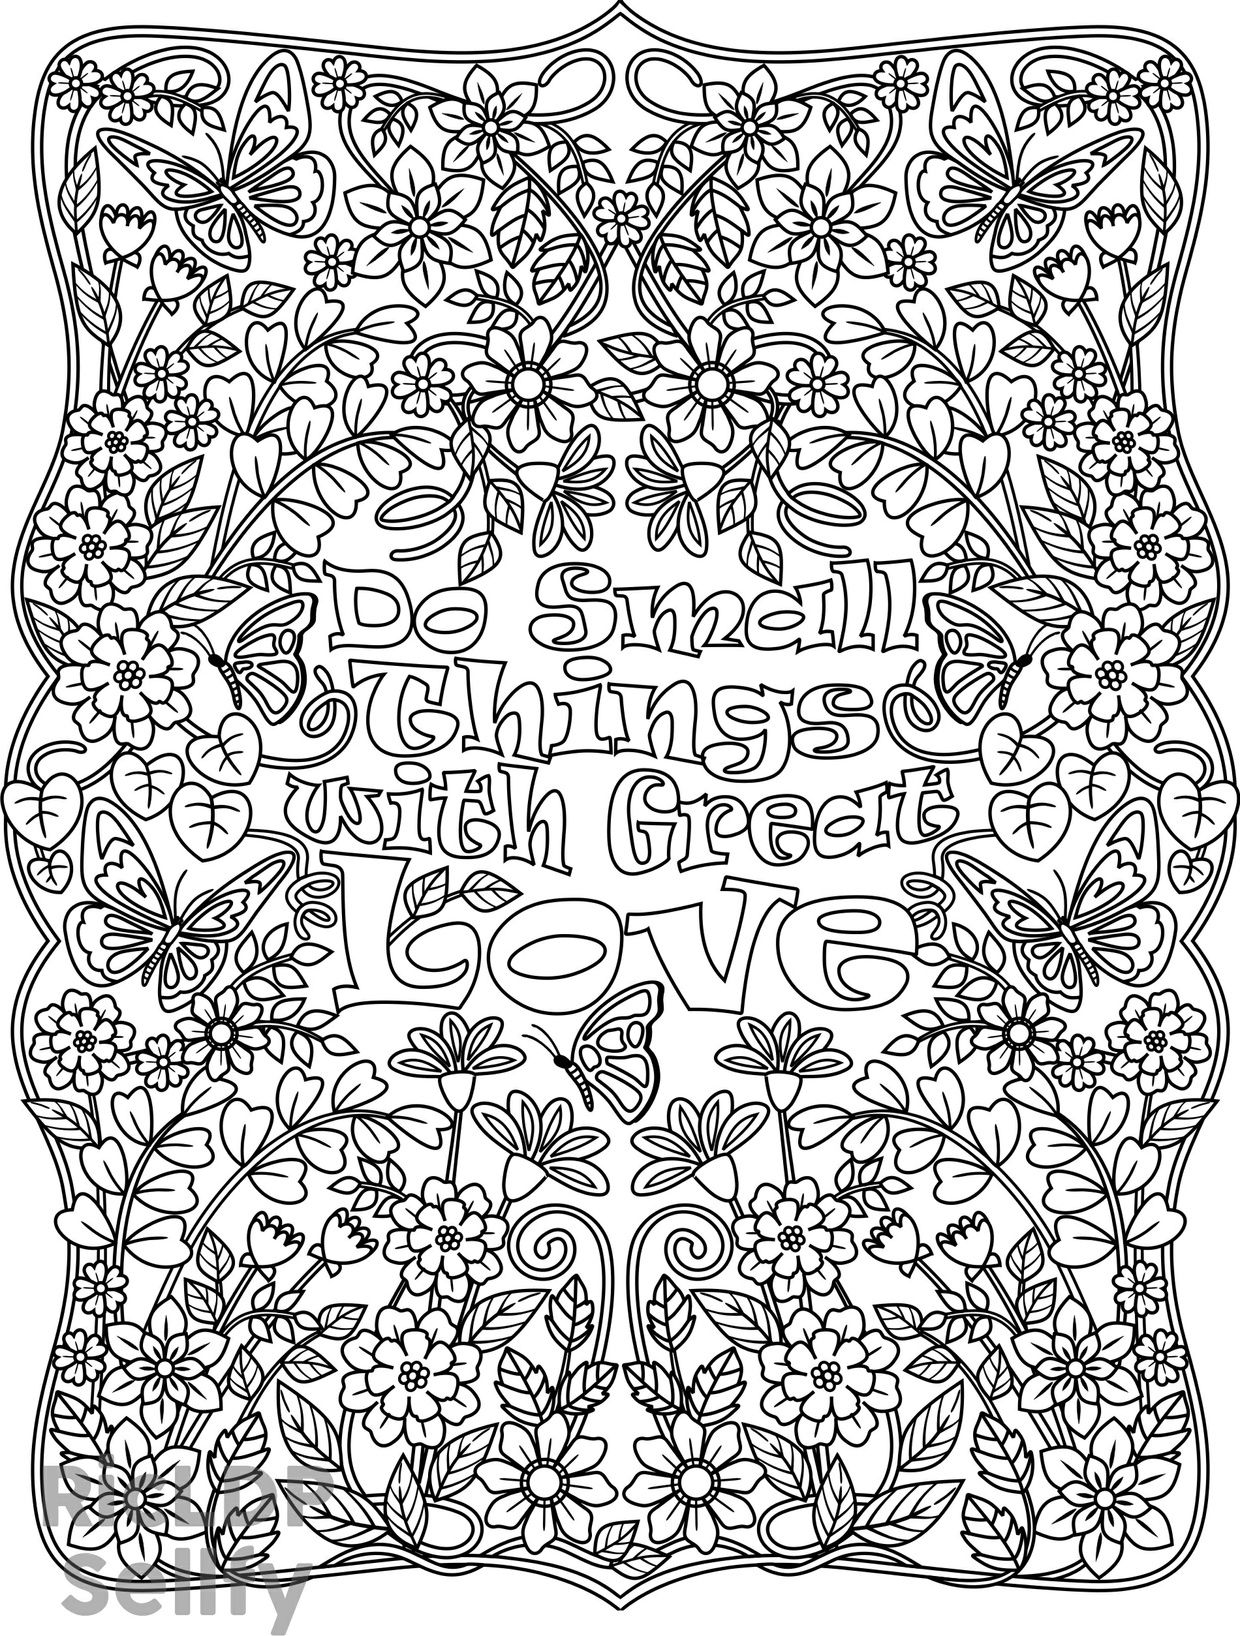 do small things with great love coloring page for adults k